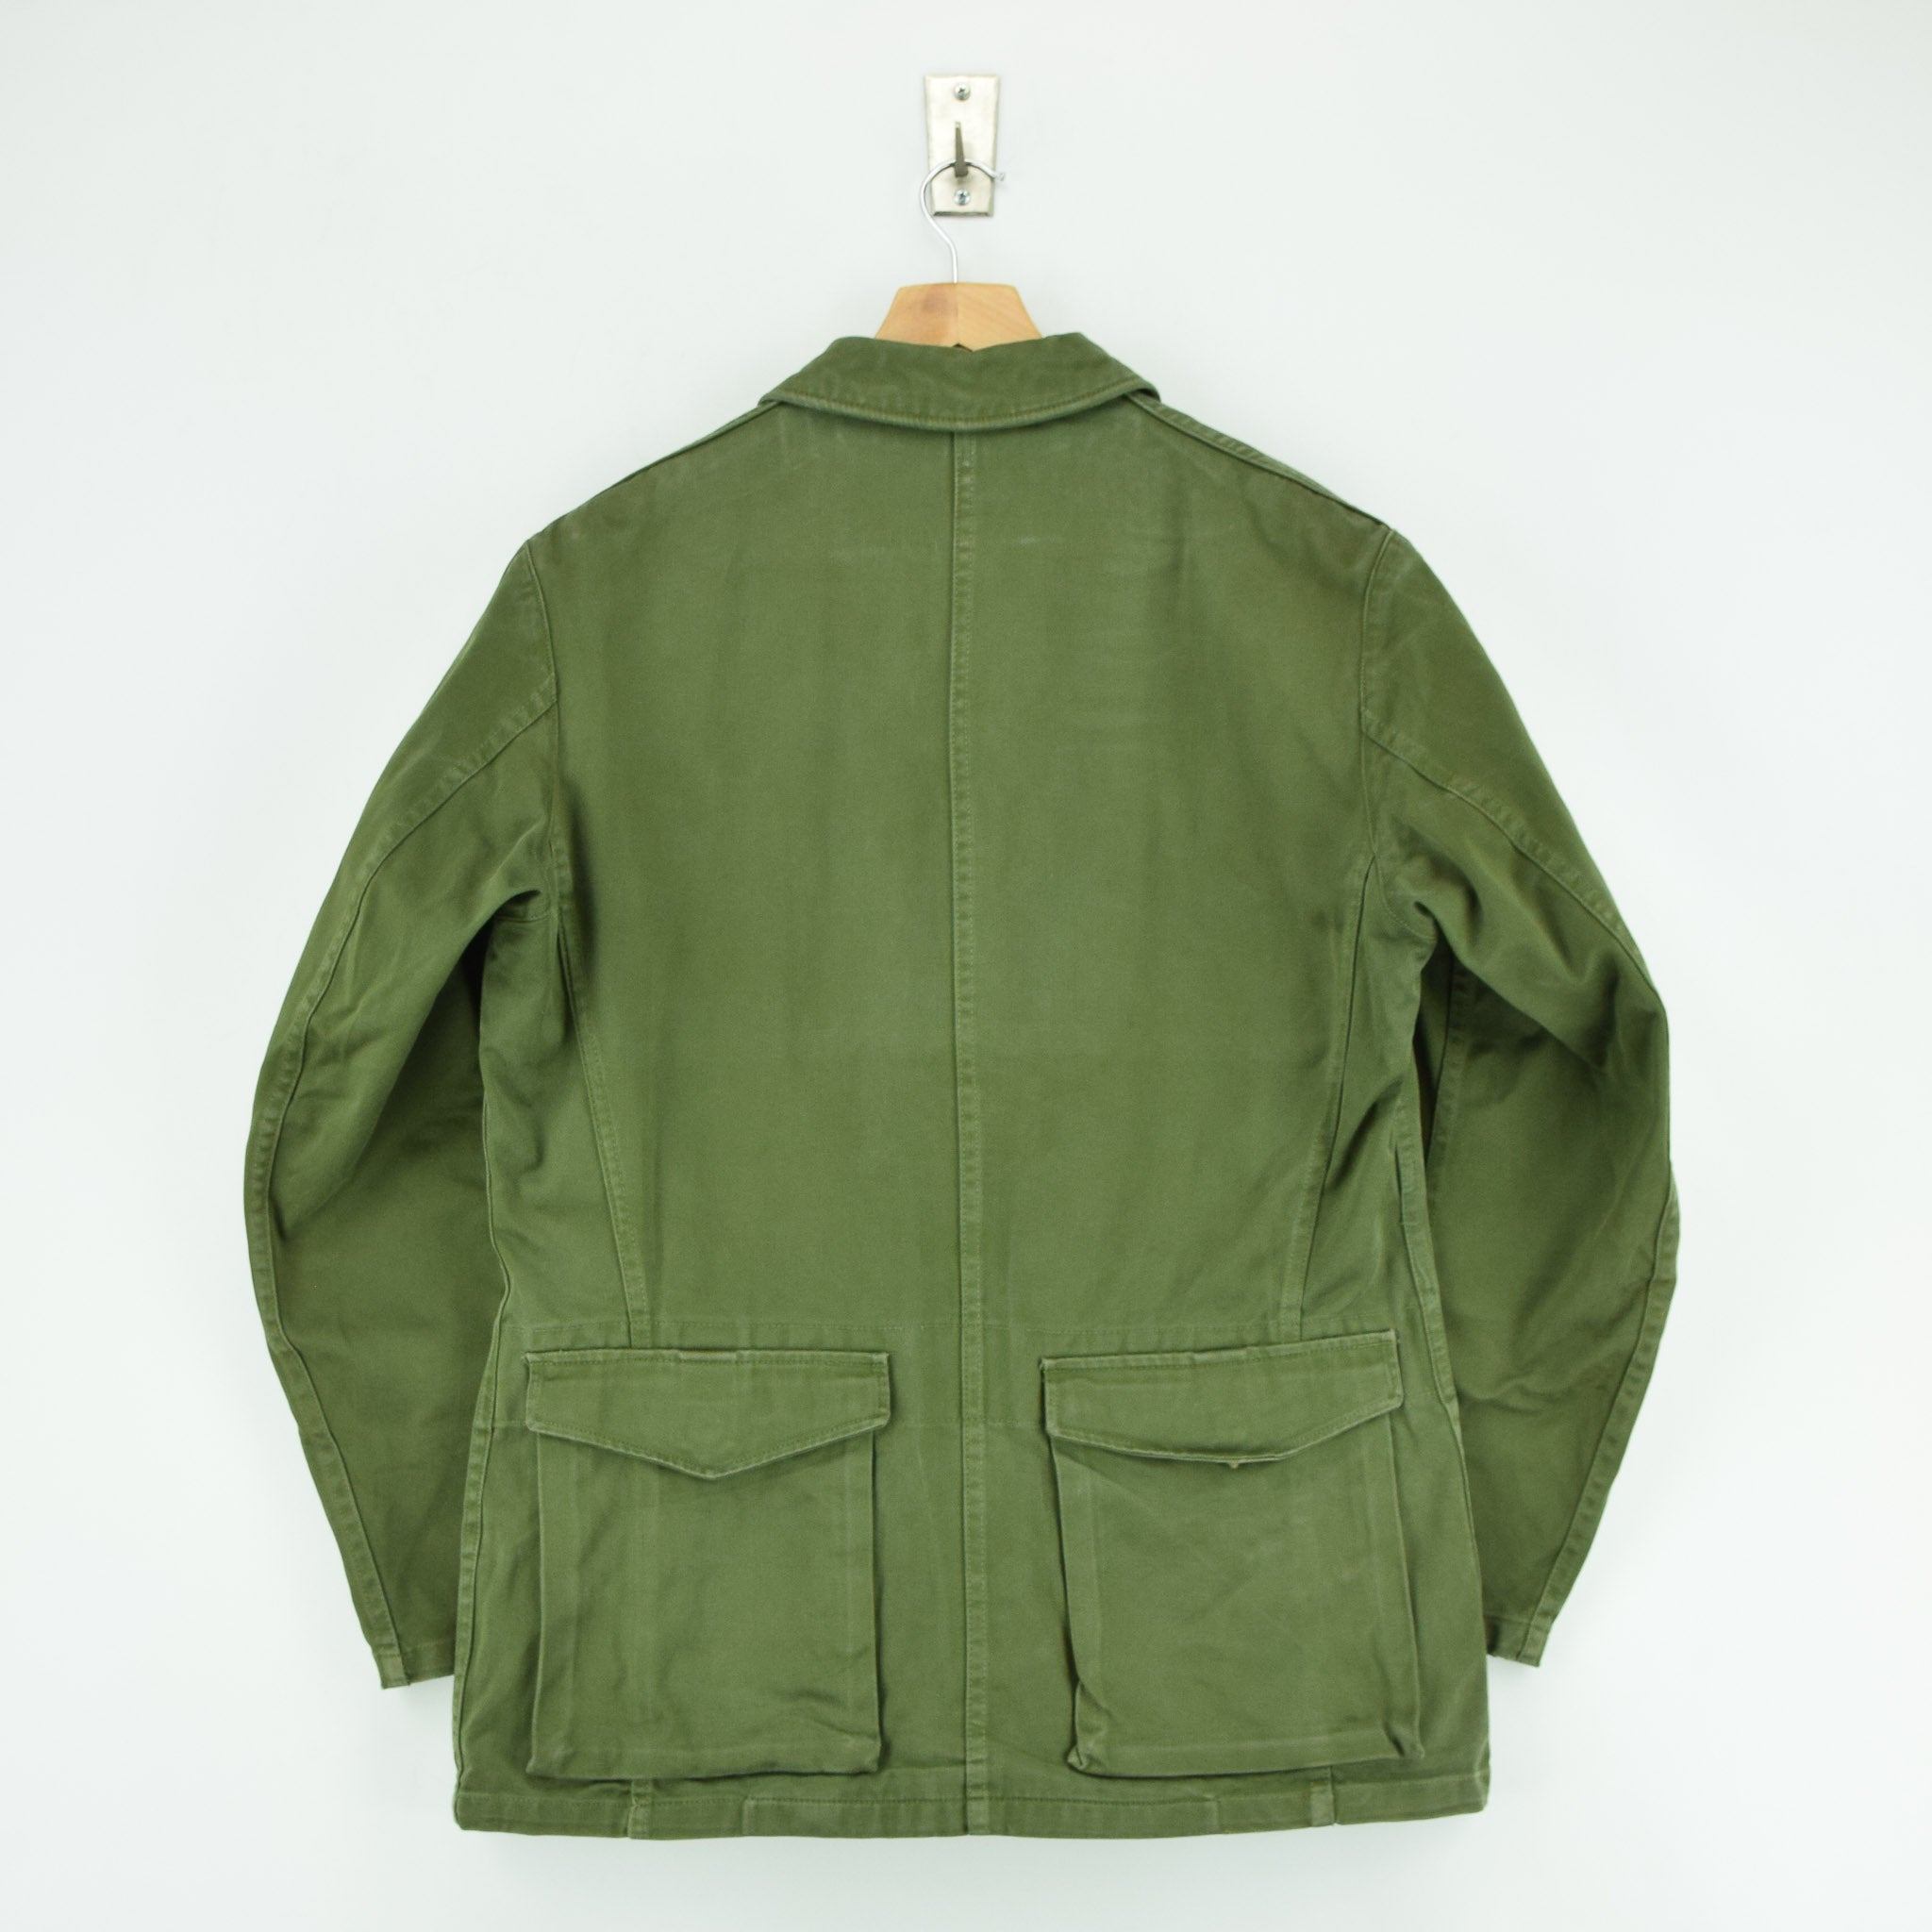 Vintage Well Worn Swedish M59 Field Military Green Worker Style Jacket M / L back